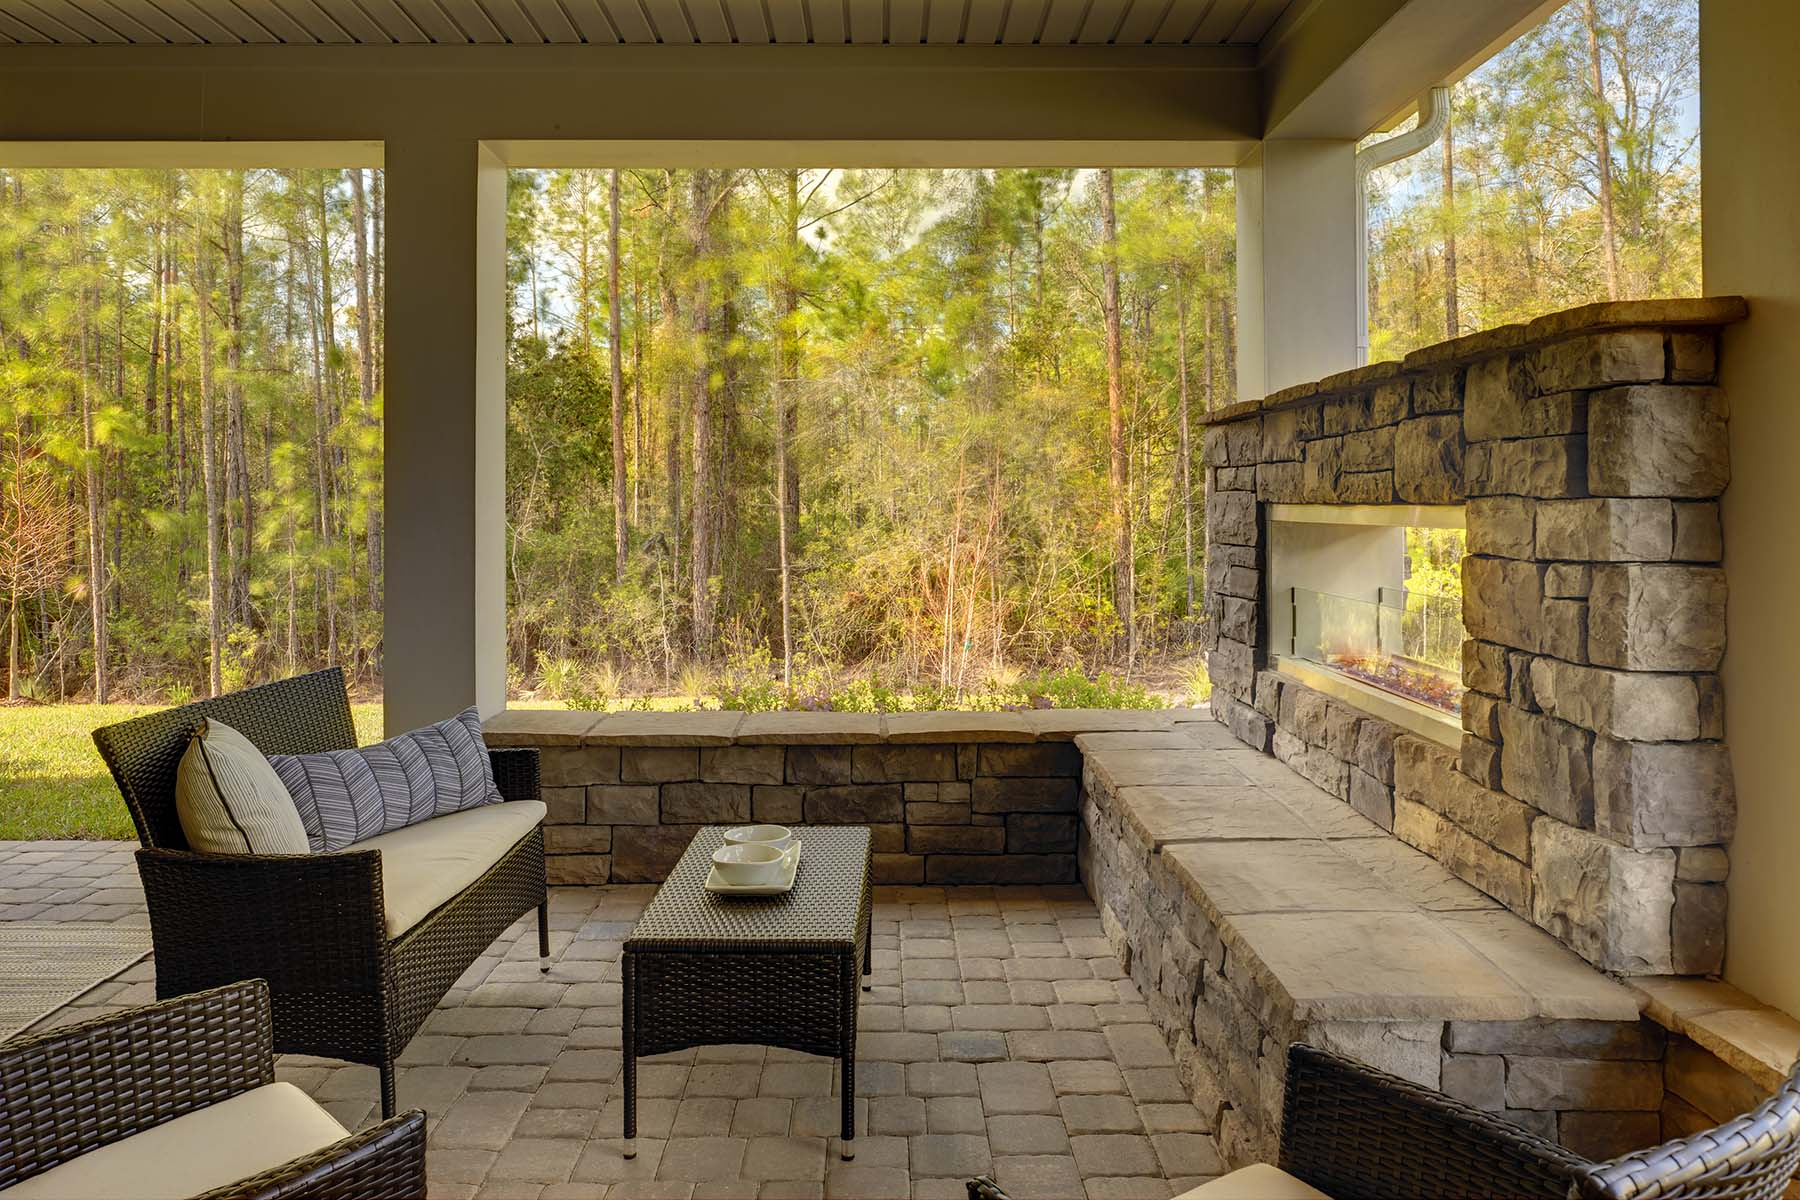 Egret Plan Patio at RiverTown - Arbors in St. Johns Florida by Mattamy Homes